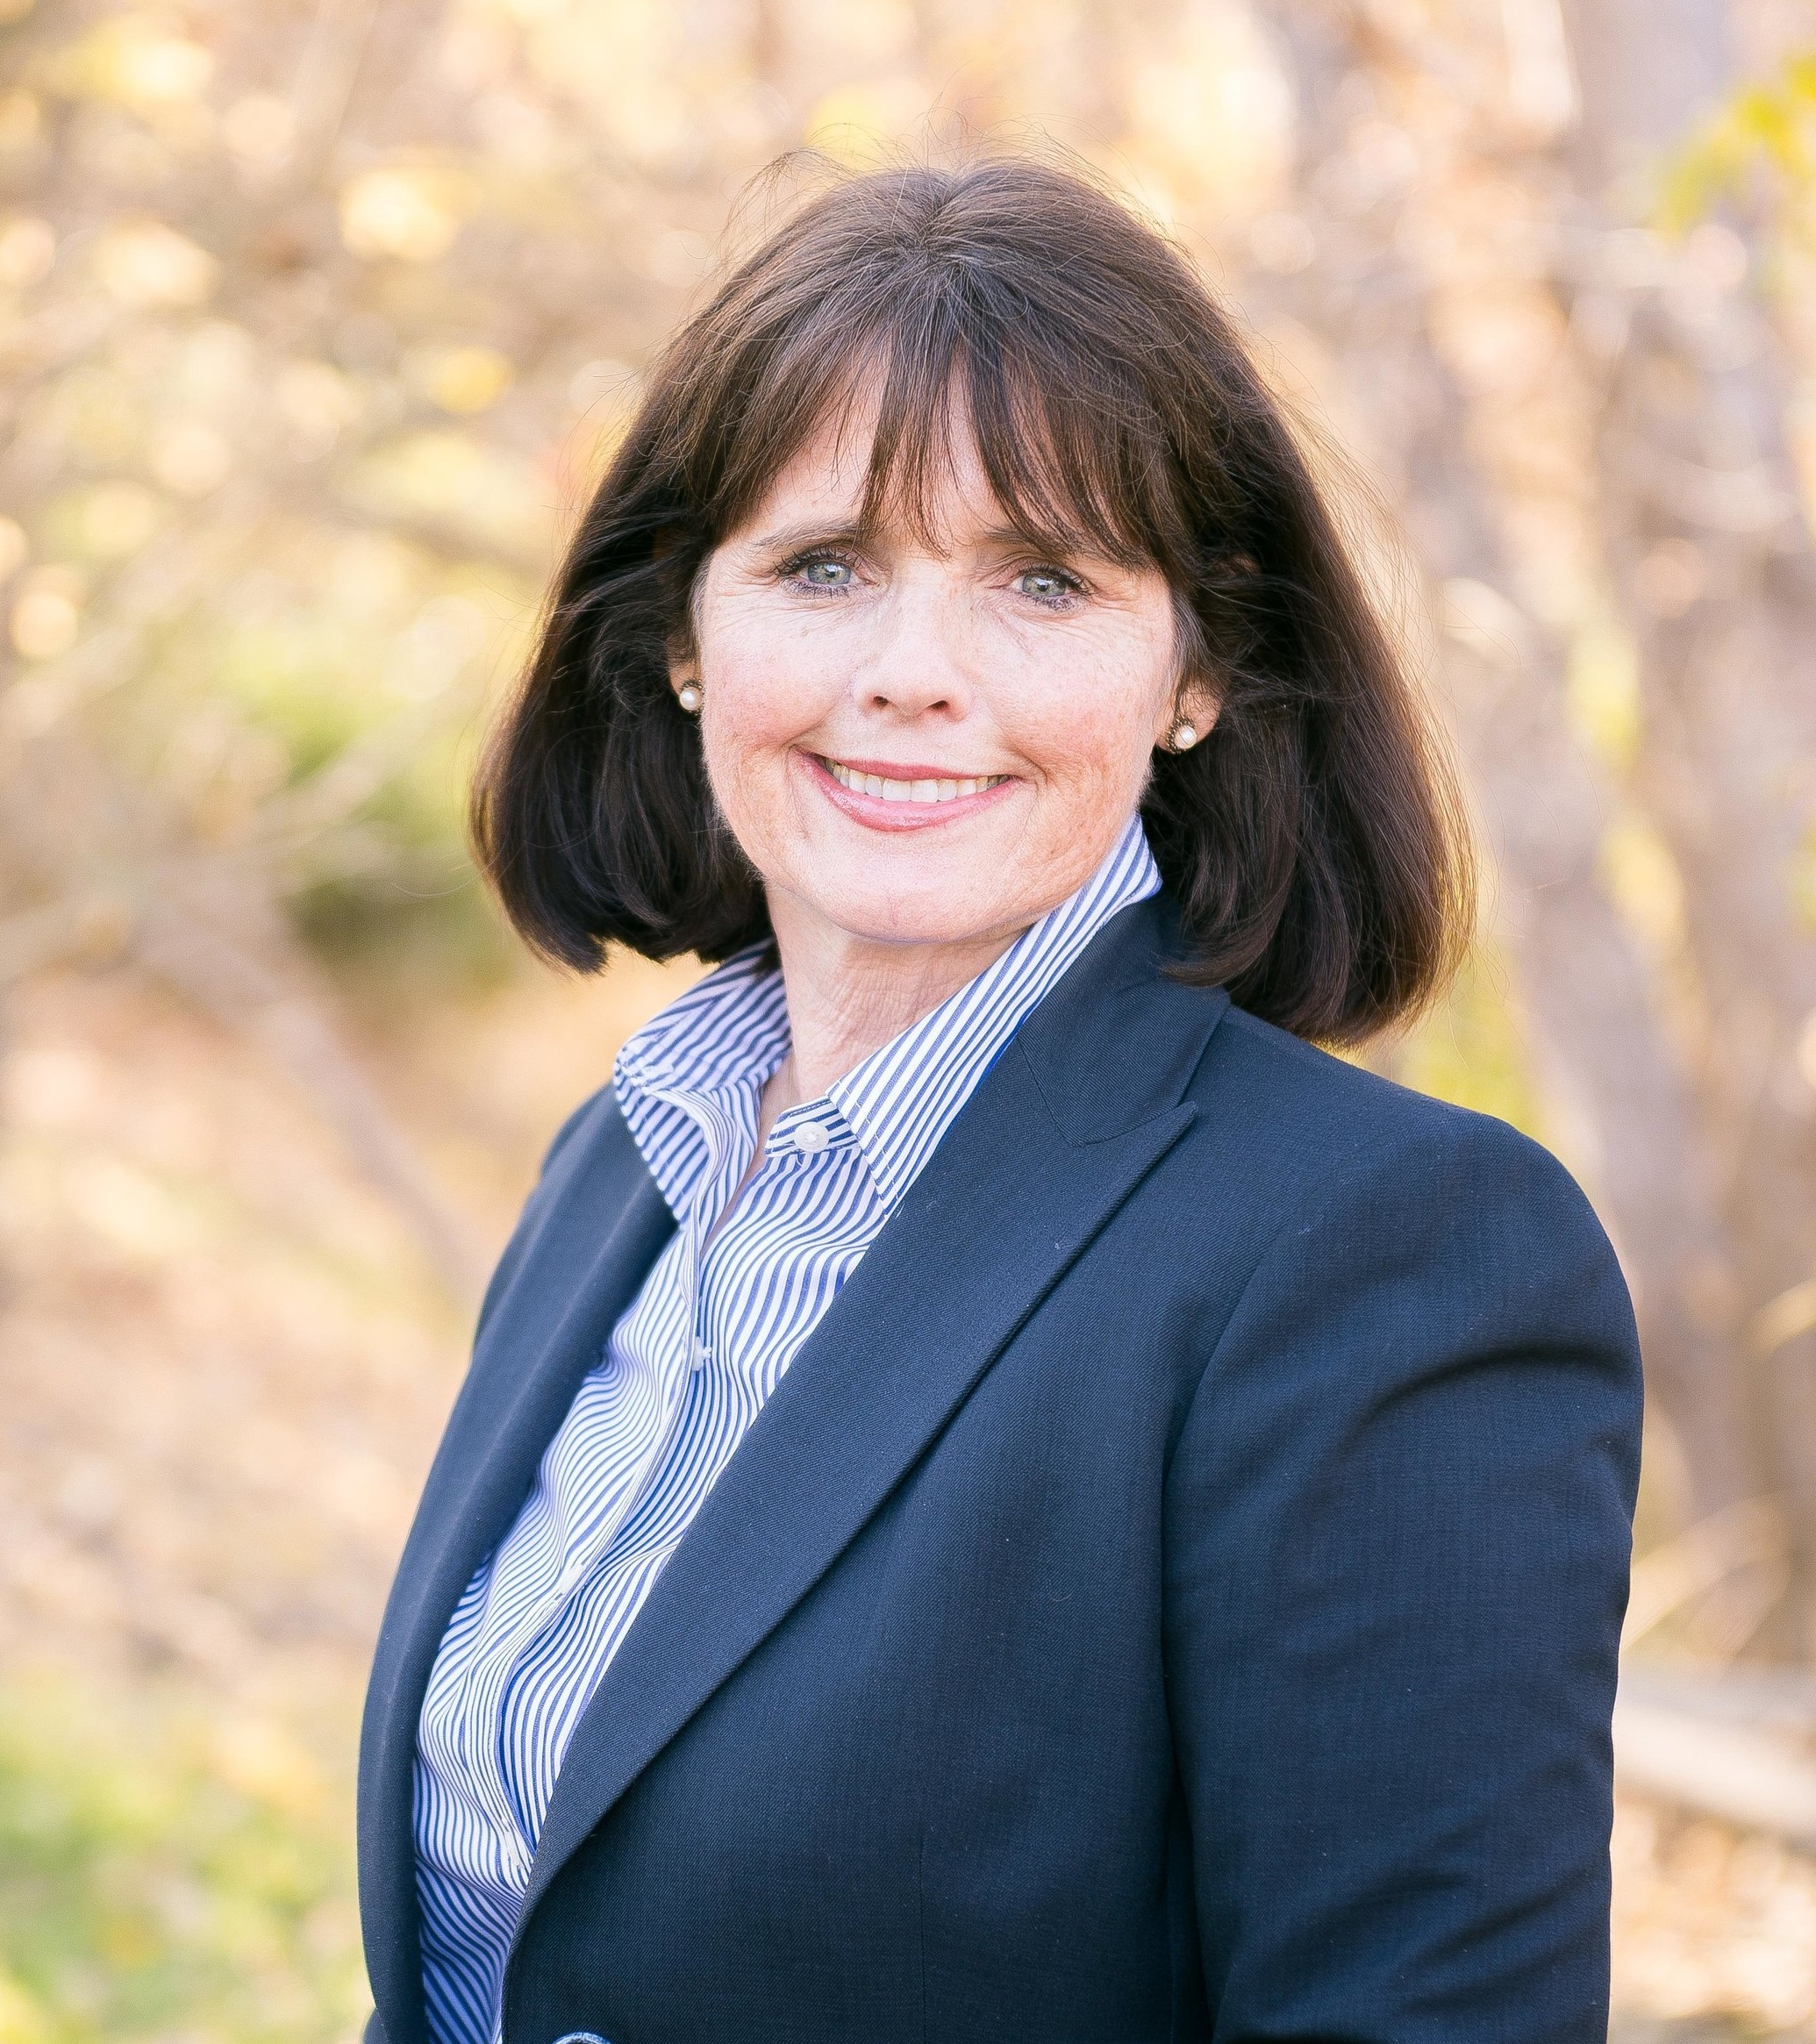 Supervisor Andersen was elected to the Contra Costa County Board of Supervisors in 2012. In 2016 she ran unopposed. She has announced her re-election bid for 2020.